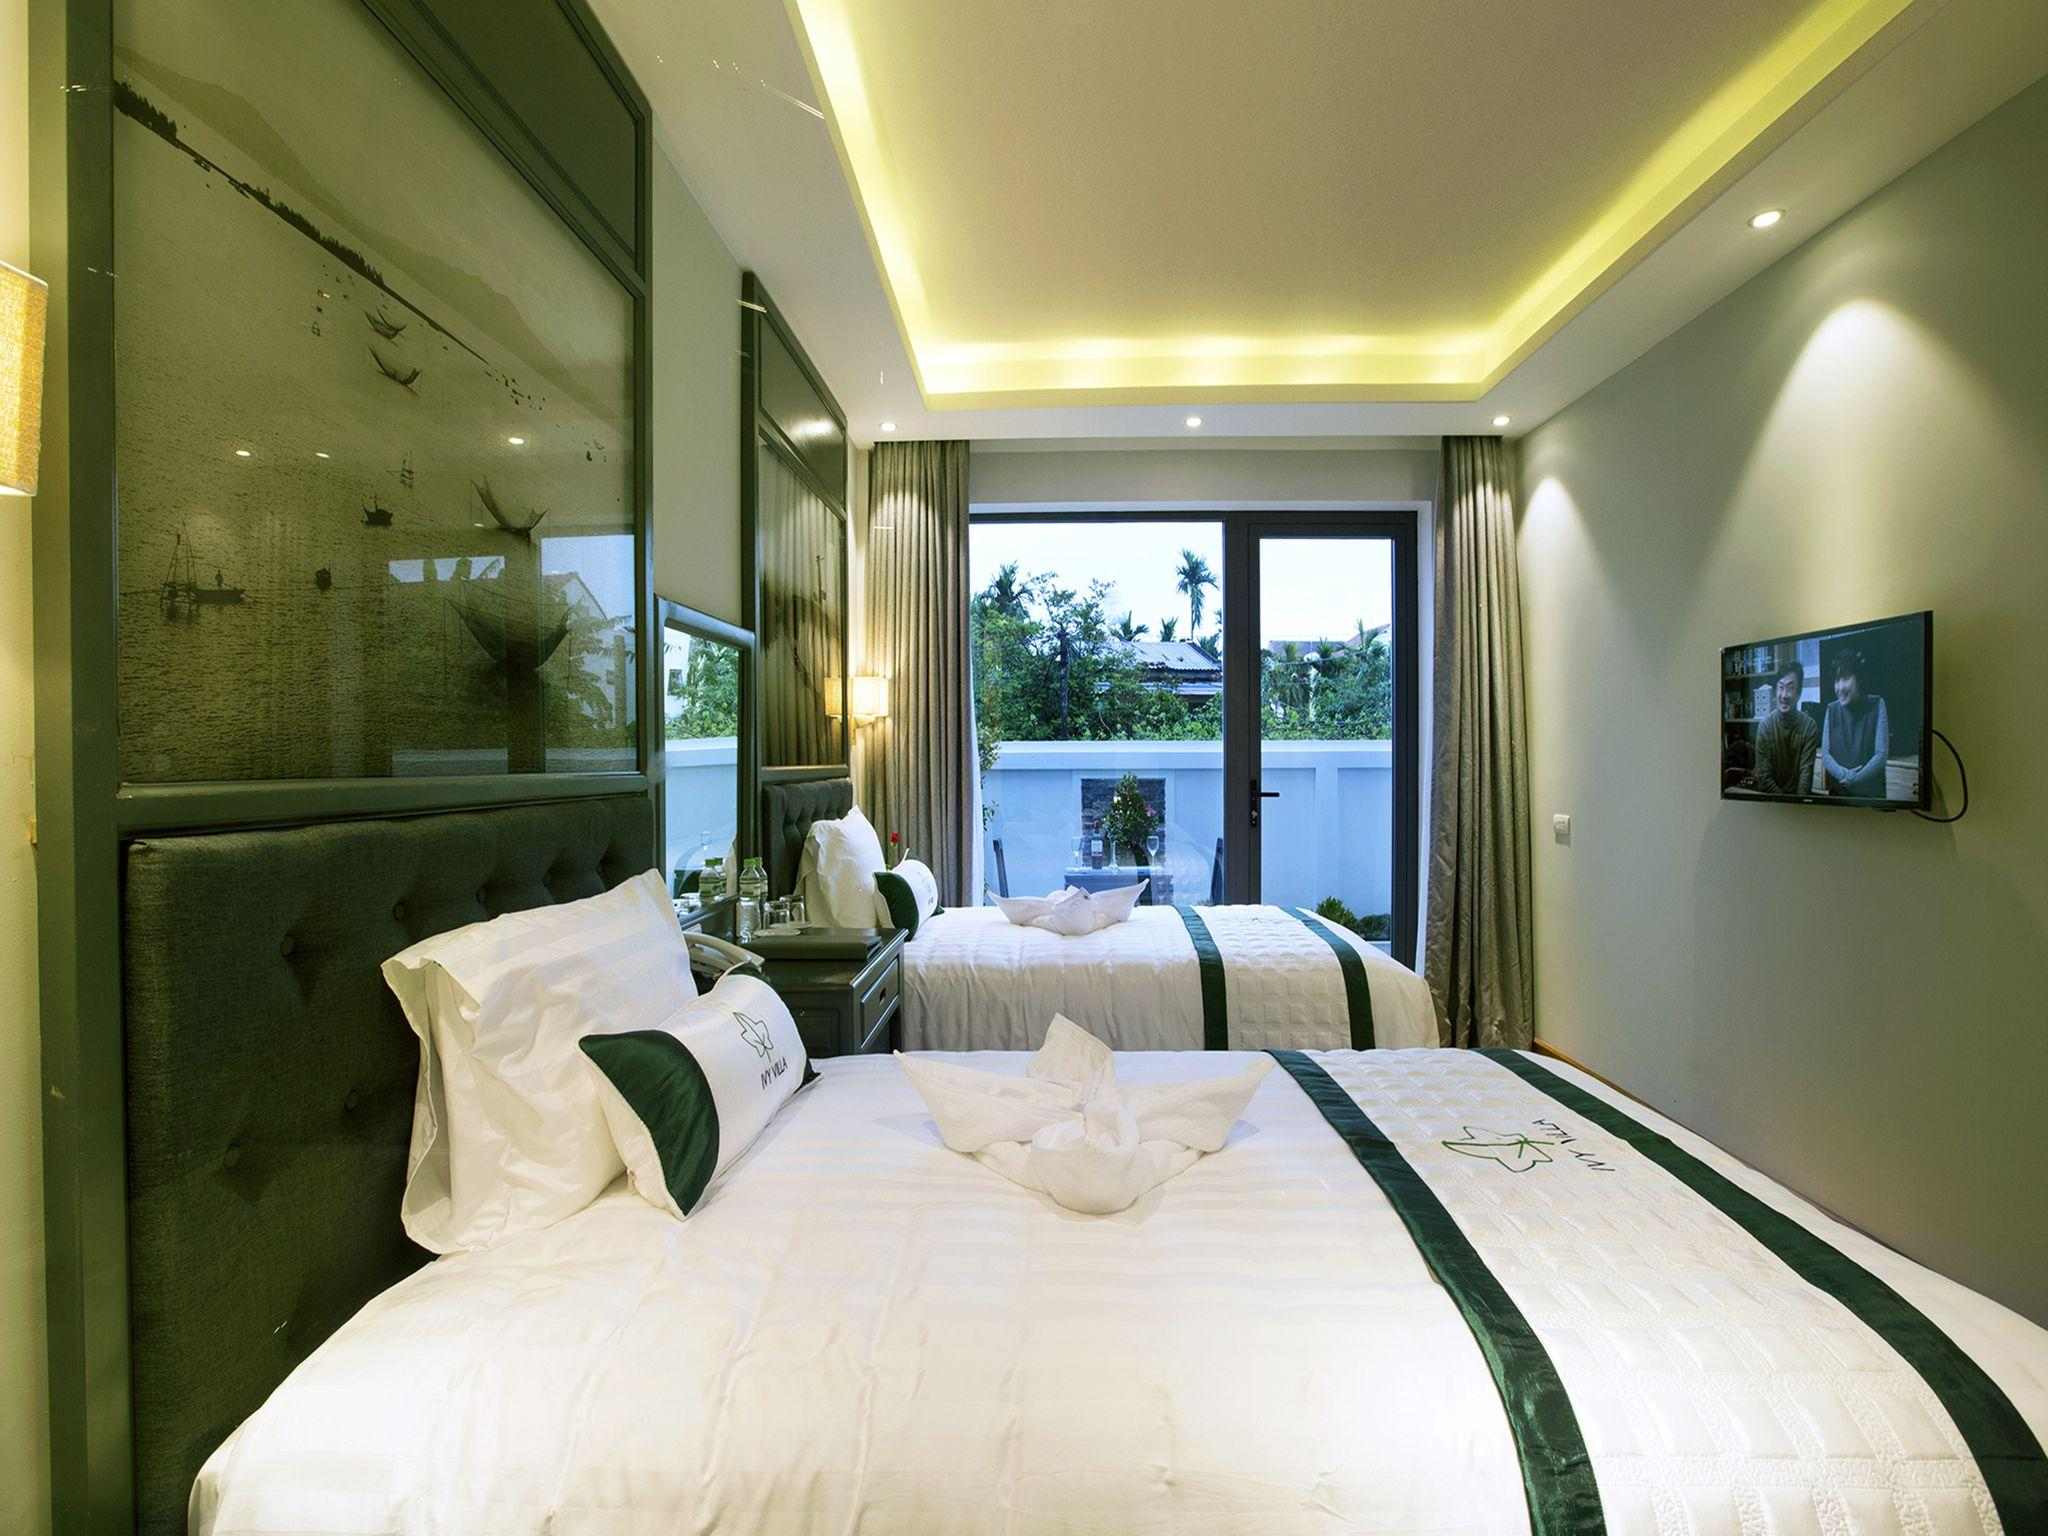 Ivy Villa One Superior Room With 2 Single Beds 01